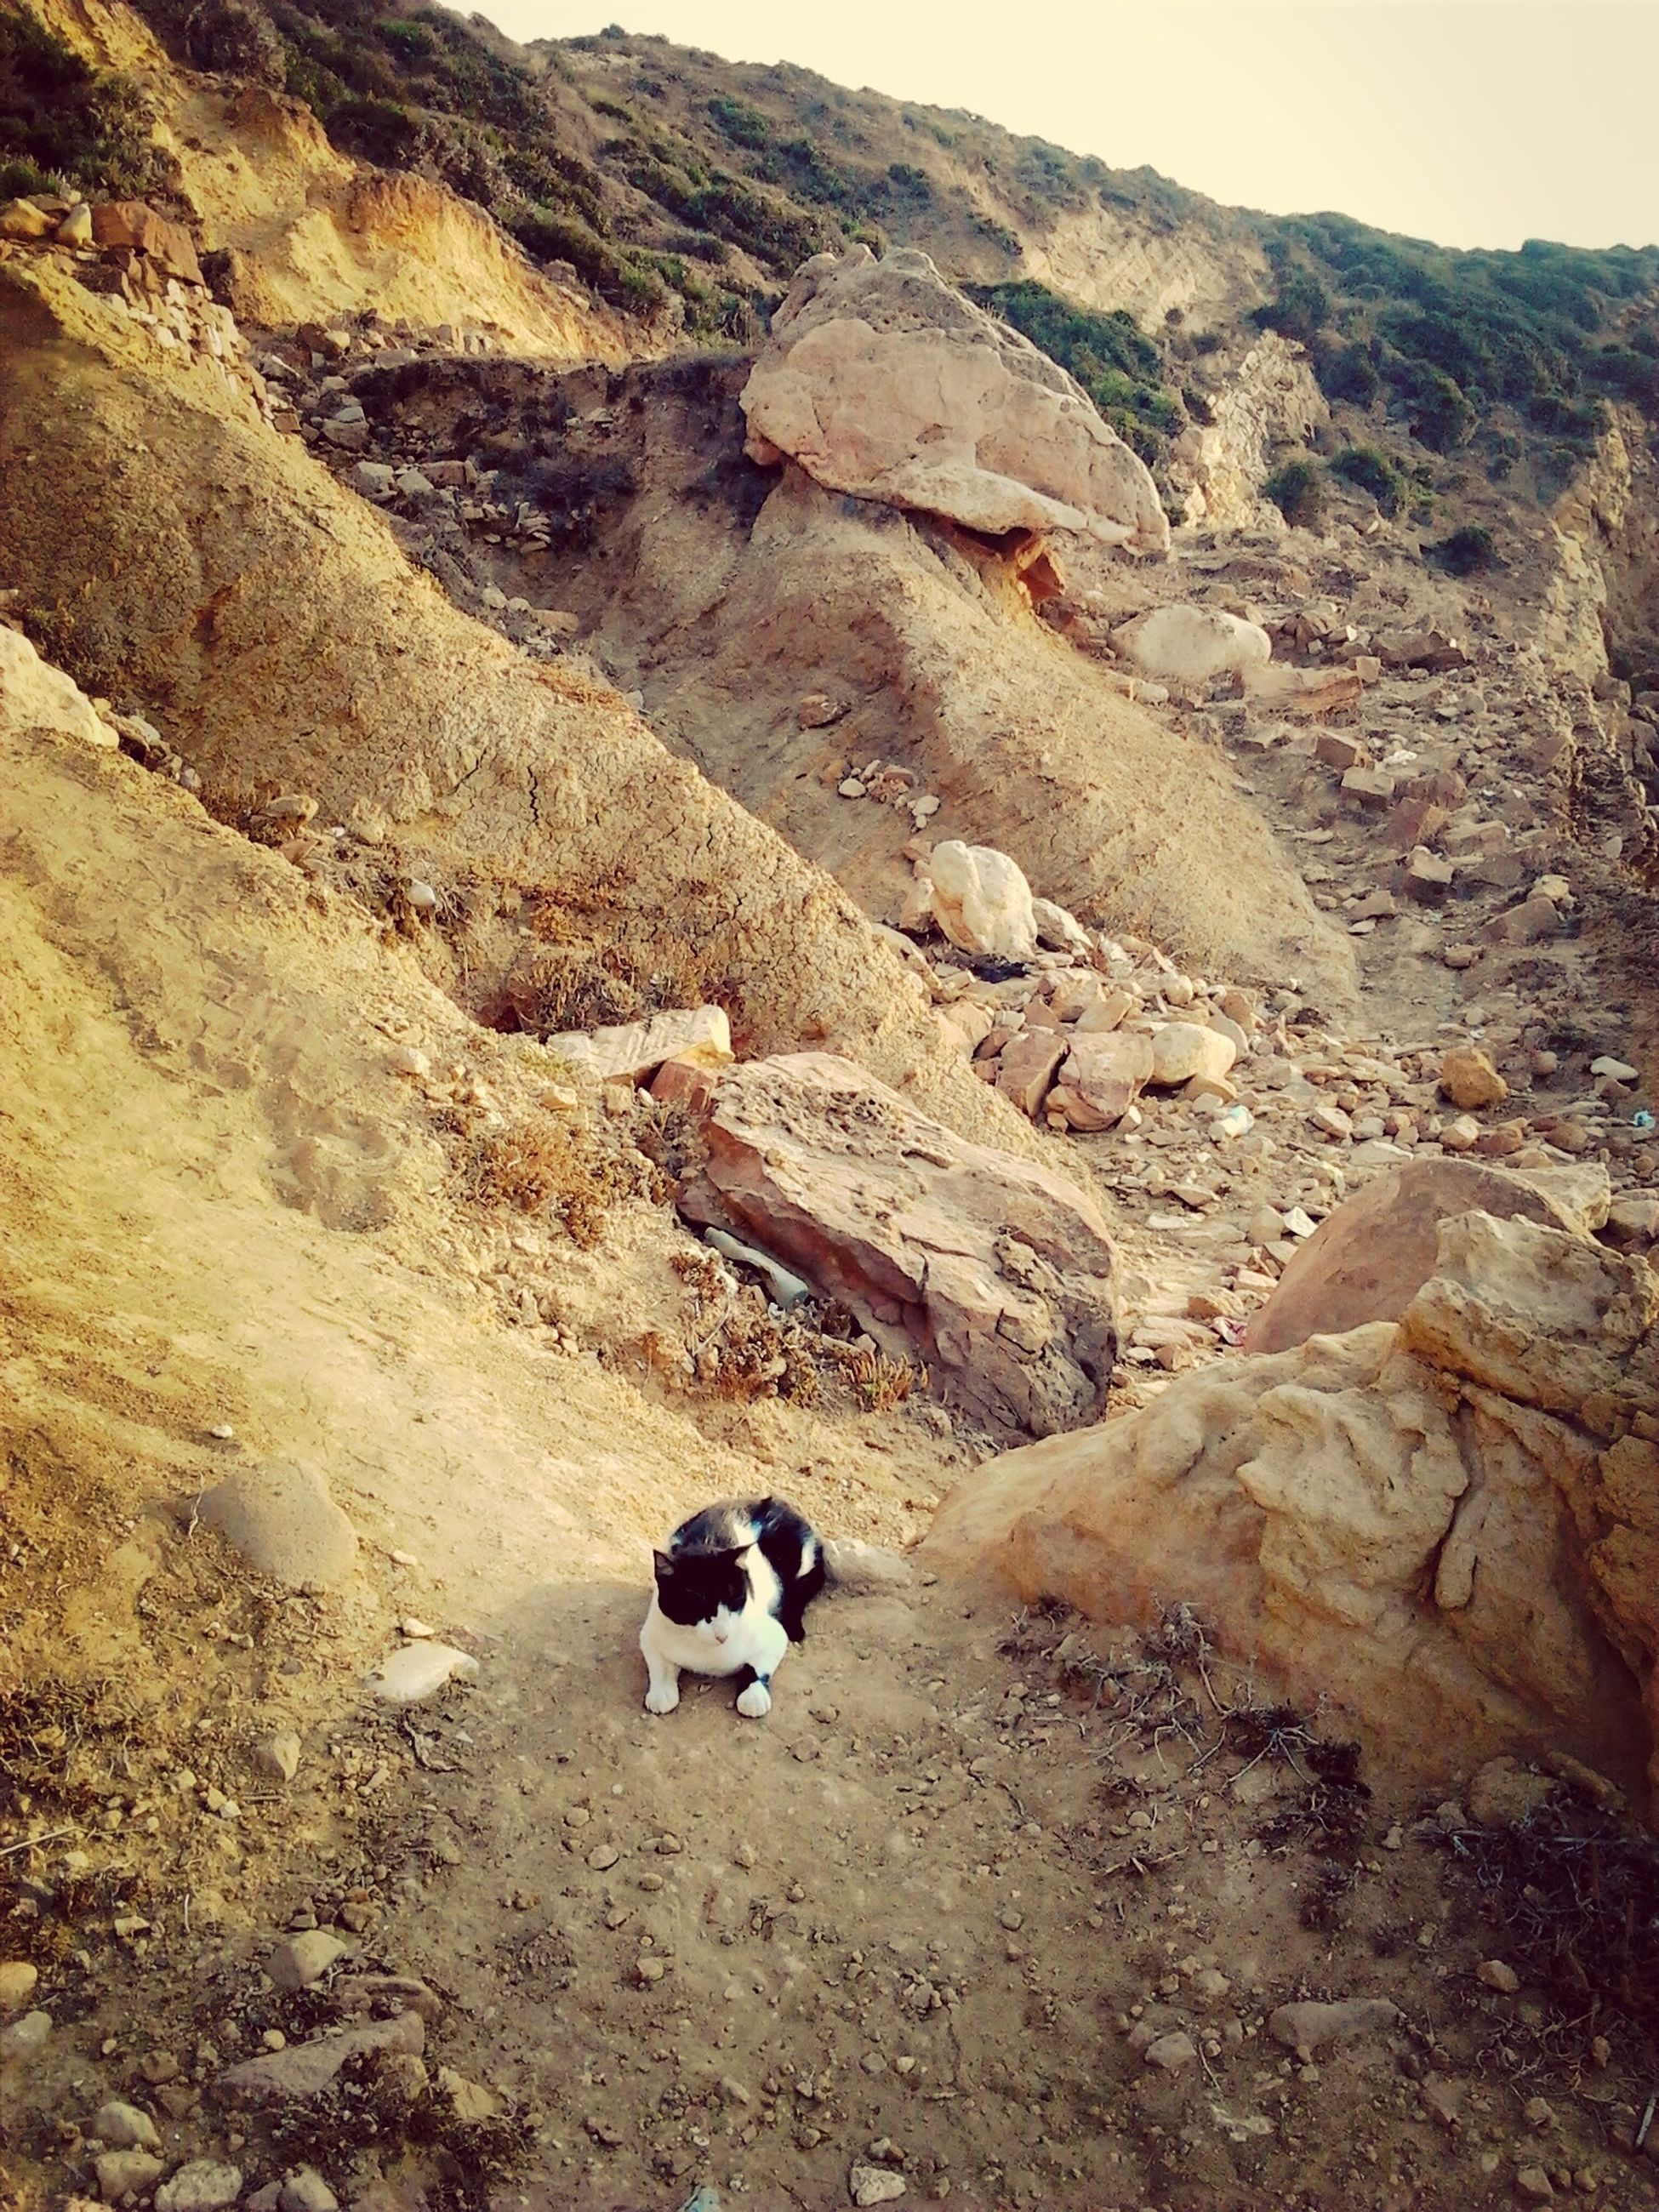 domestic animals, landscape, mountain, rock - object, mammal, animal themes, nature, dirt road, dog, high angle view, non-urban scene, tranquility, tranquil scene, day, one animal, outdoors, dirt, rock formation, field, pets